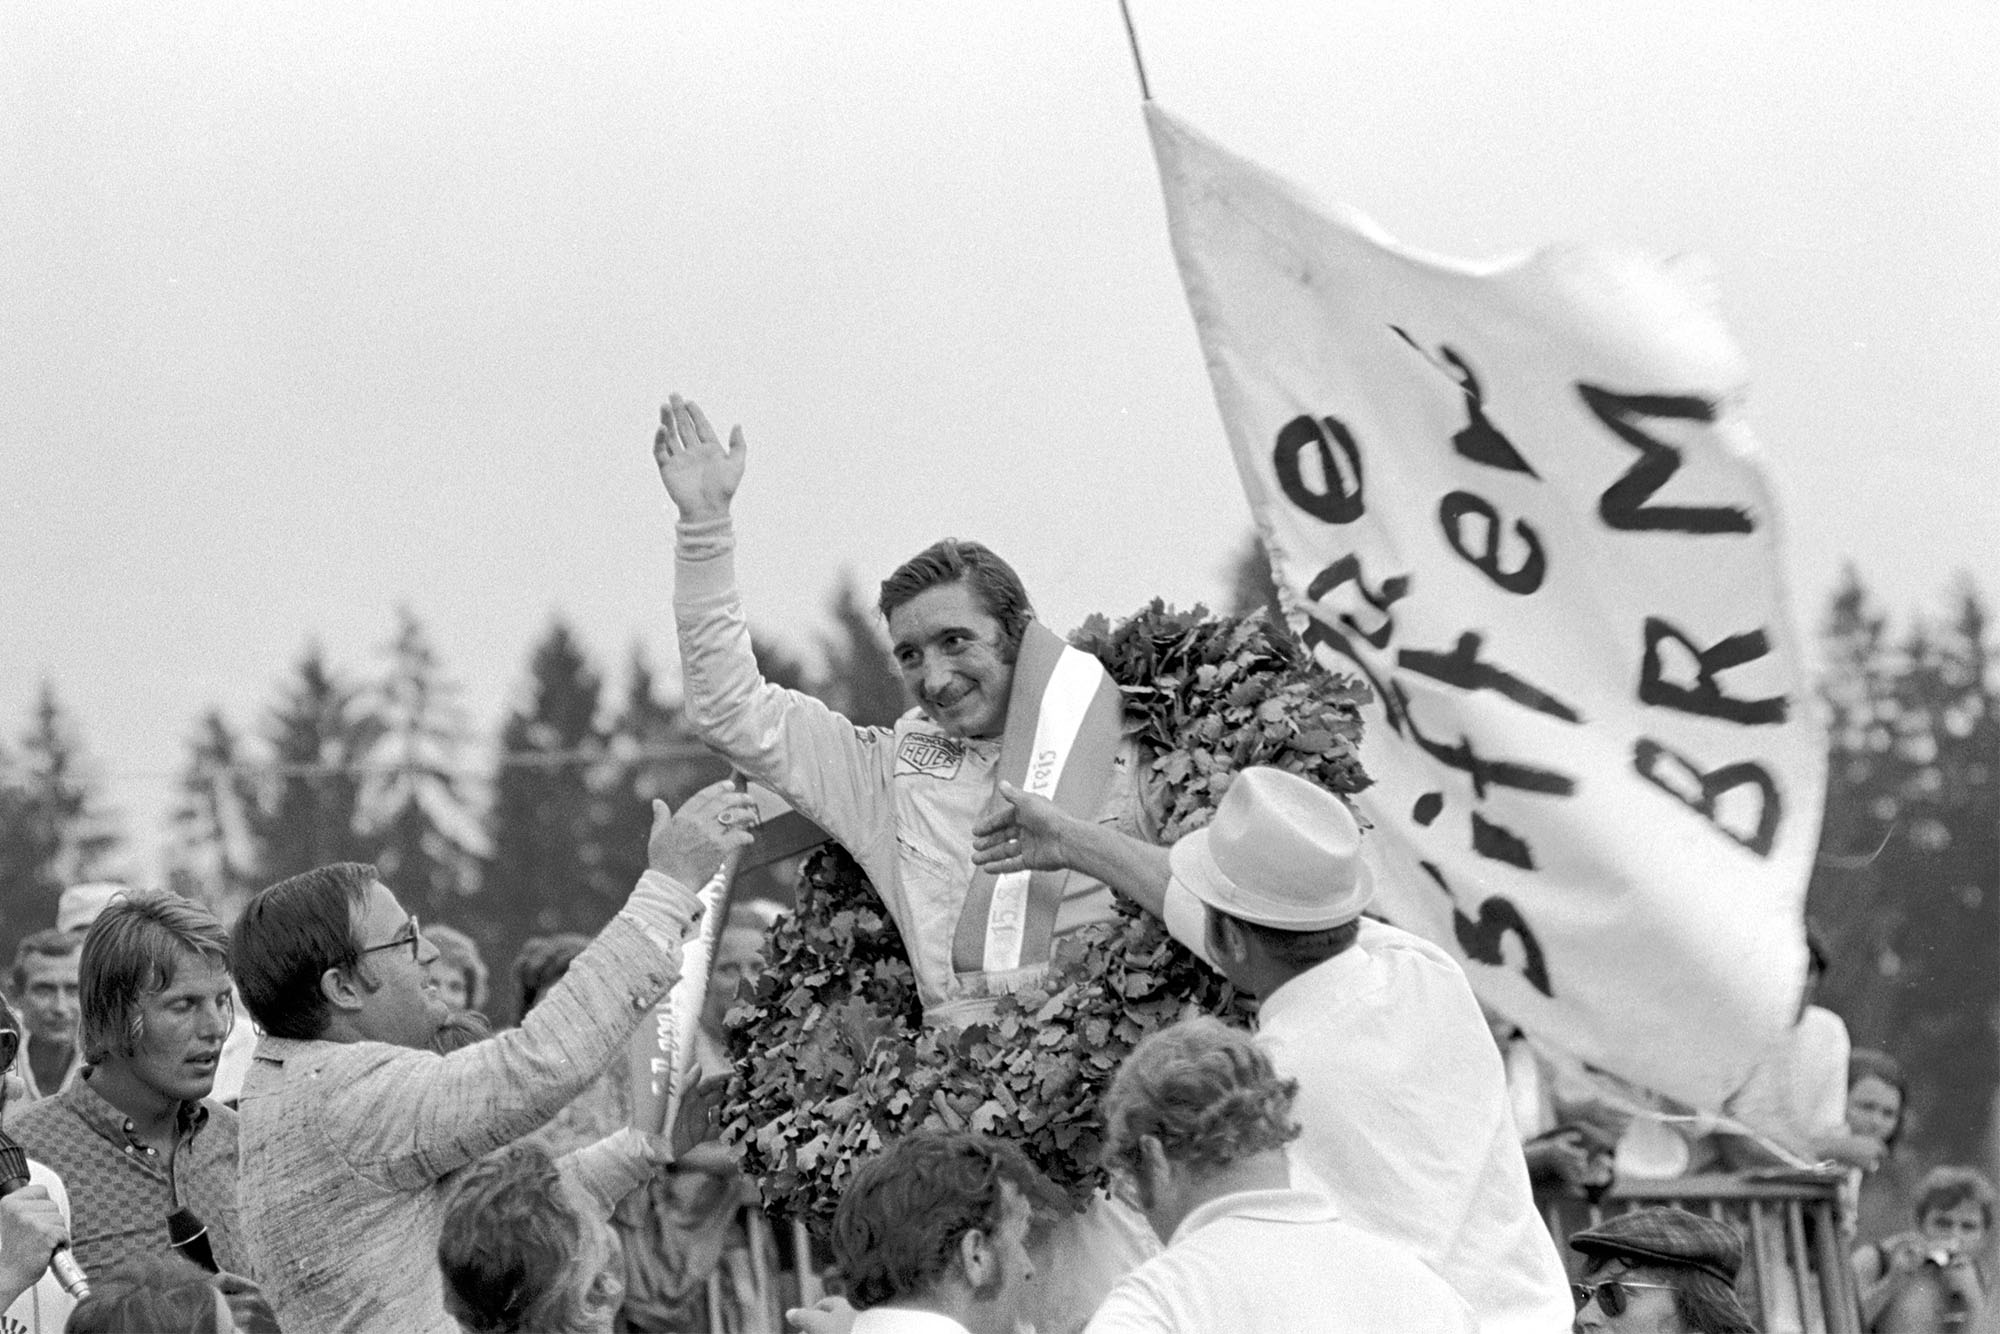 Jo Siffert waves to crowds from the podium after winning the 1971 French Grand Prix.